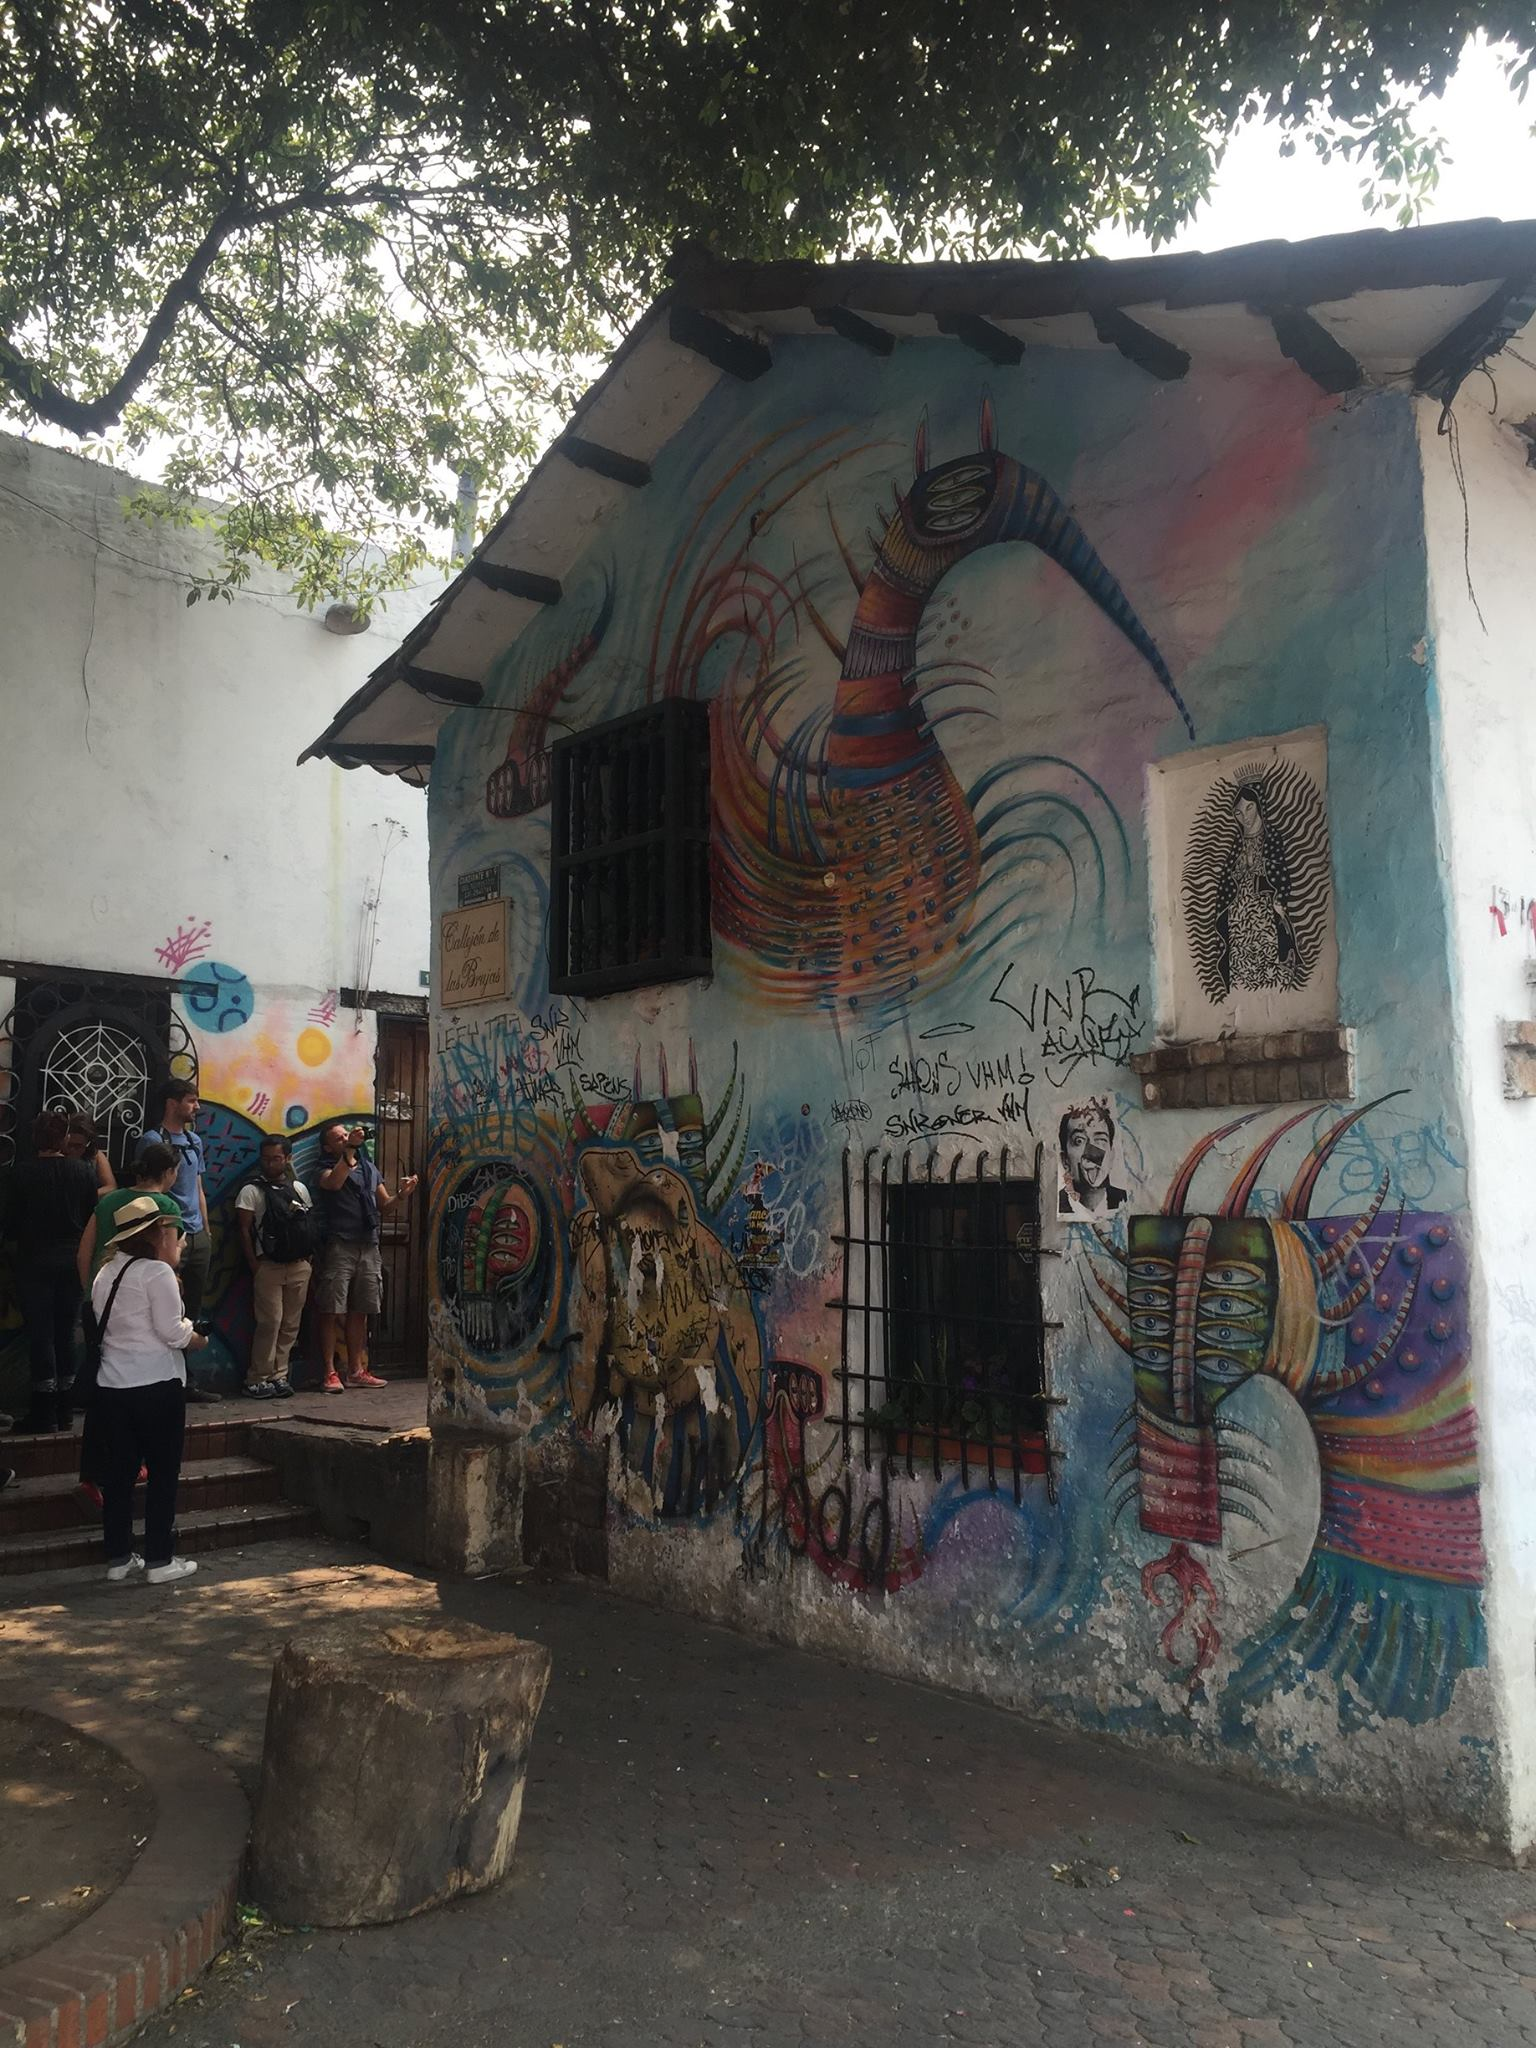 One of the oldest buildings (now a pub) in Bogotá, complete with a recent graffiti mural.